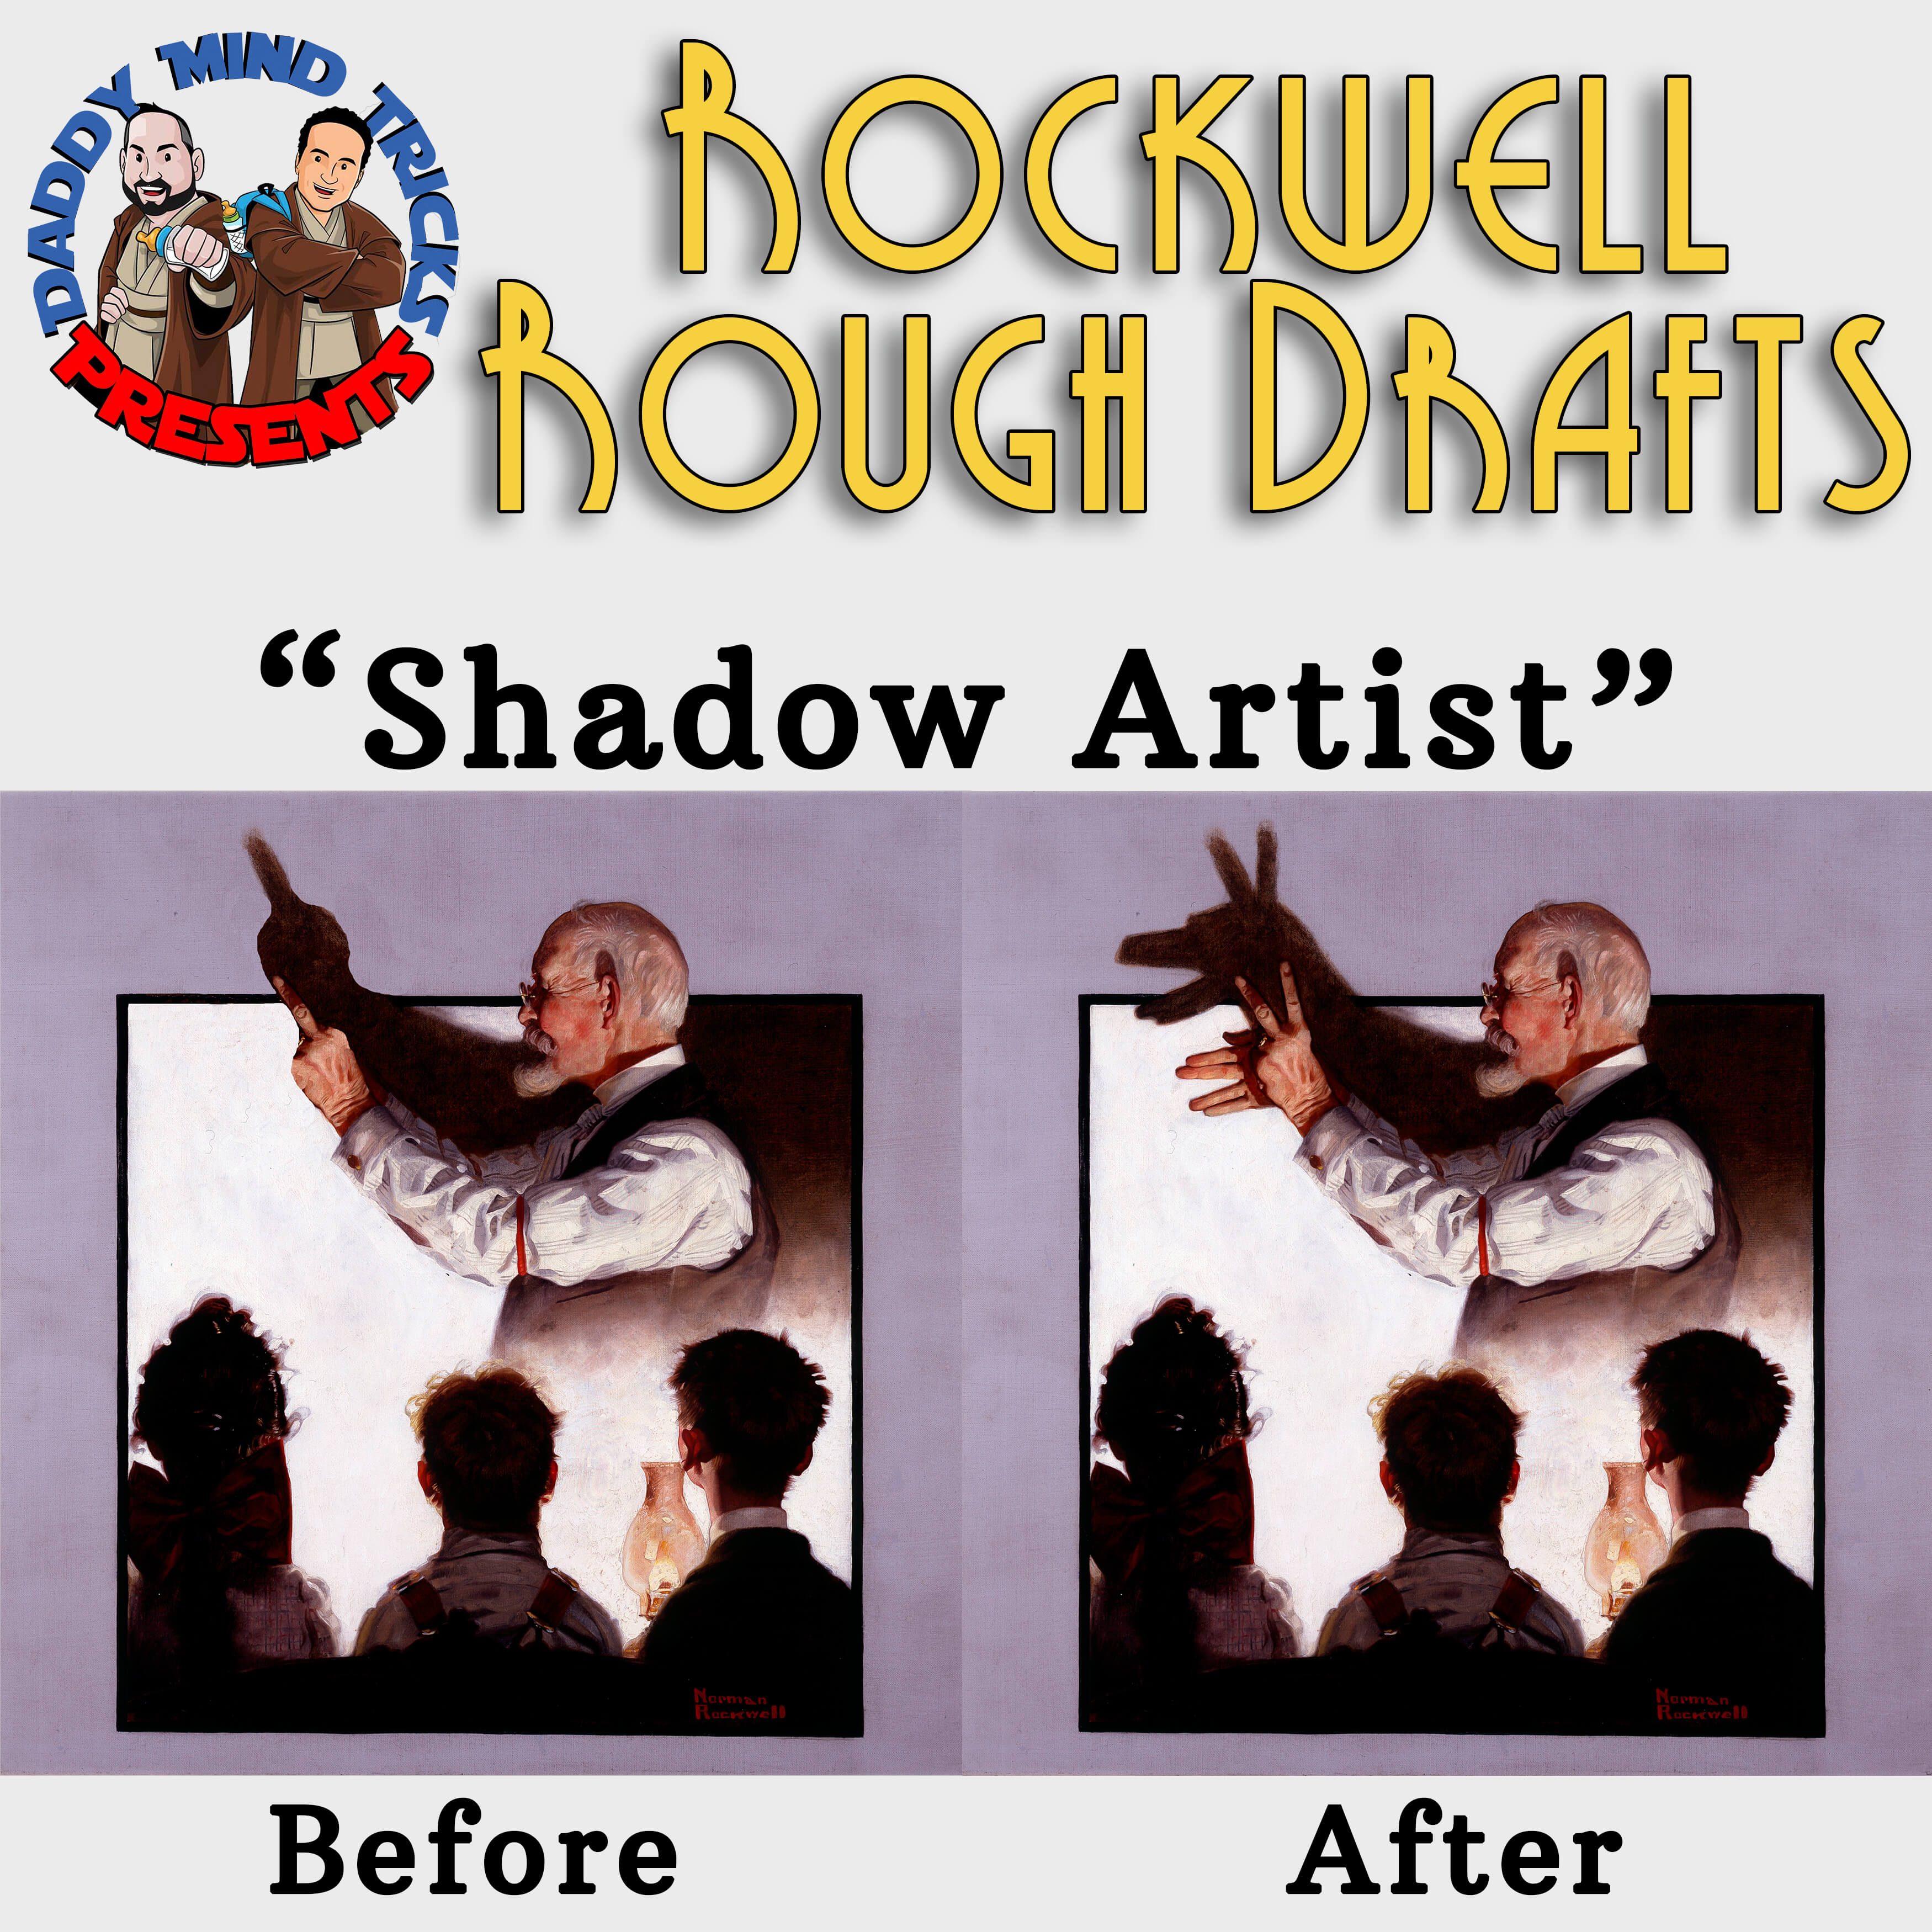 Norman Rockwell rough drafts